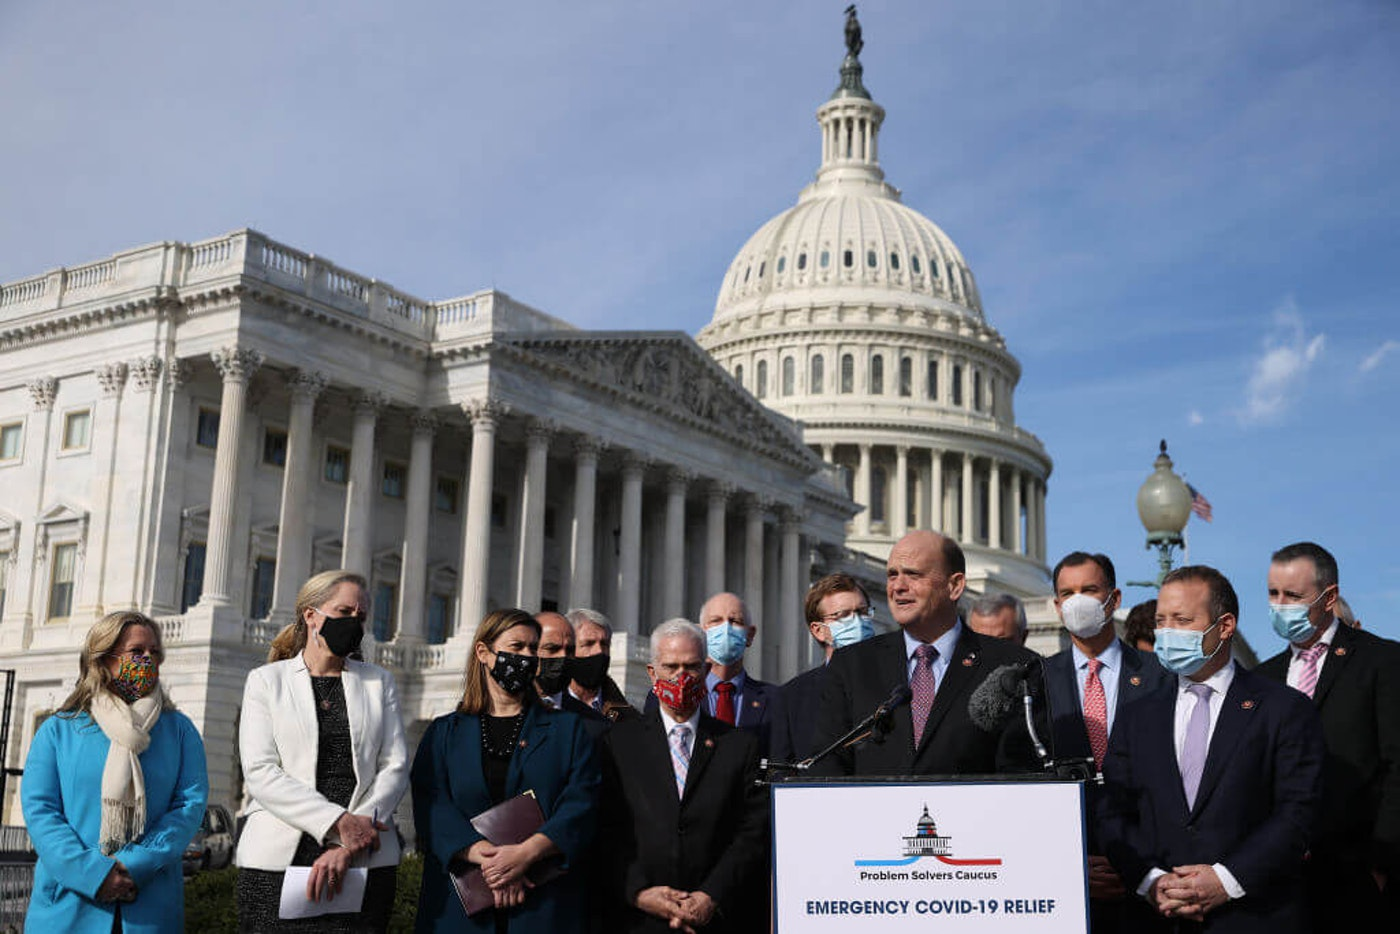 WASHINGTON, DC - DECEMBER 03:  Rep. Tom Reed (R-NY) (at lectern) and Rep. Josh Gottheimer (D-NJ) (2nd R), co-chairs of the bipartisan Problem Solvers Caucus, hold a news conference with fellow members of Congress to highlight the need for bipartisan, bicameral COVID-19 relief legislation outside the U.S. Capitol on December 03, 2020 in Washington, DC. With the holiday season approaching and the legislative session coming to a close, federal government funding for critical coronavirus relief programs is set to expire as the U.S. faces daily records for infections, hospitalizations, and deaths. (Photo by Chip Somodevilla/Getty Images)